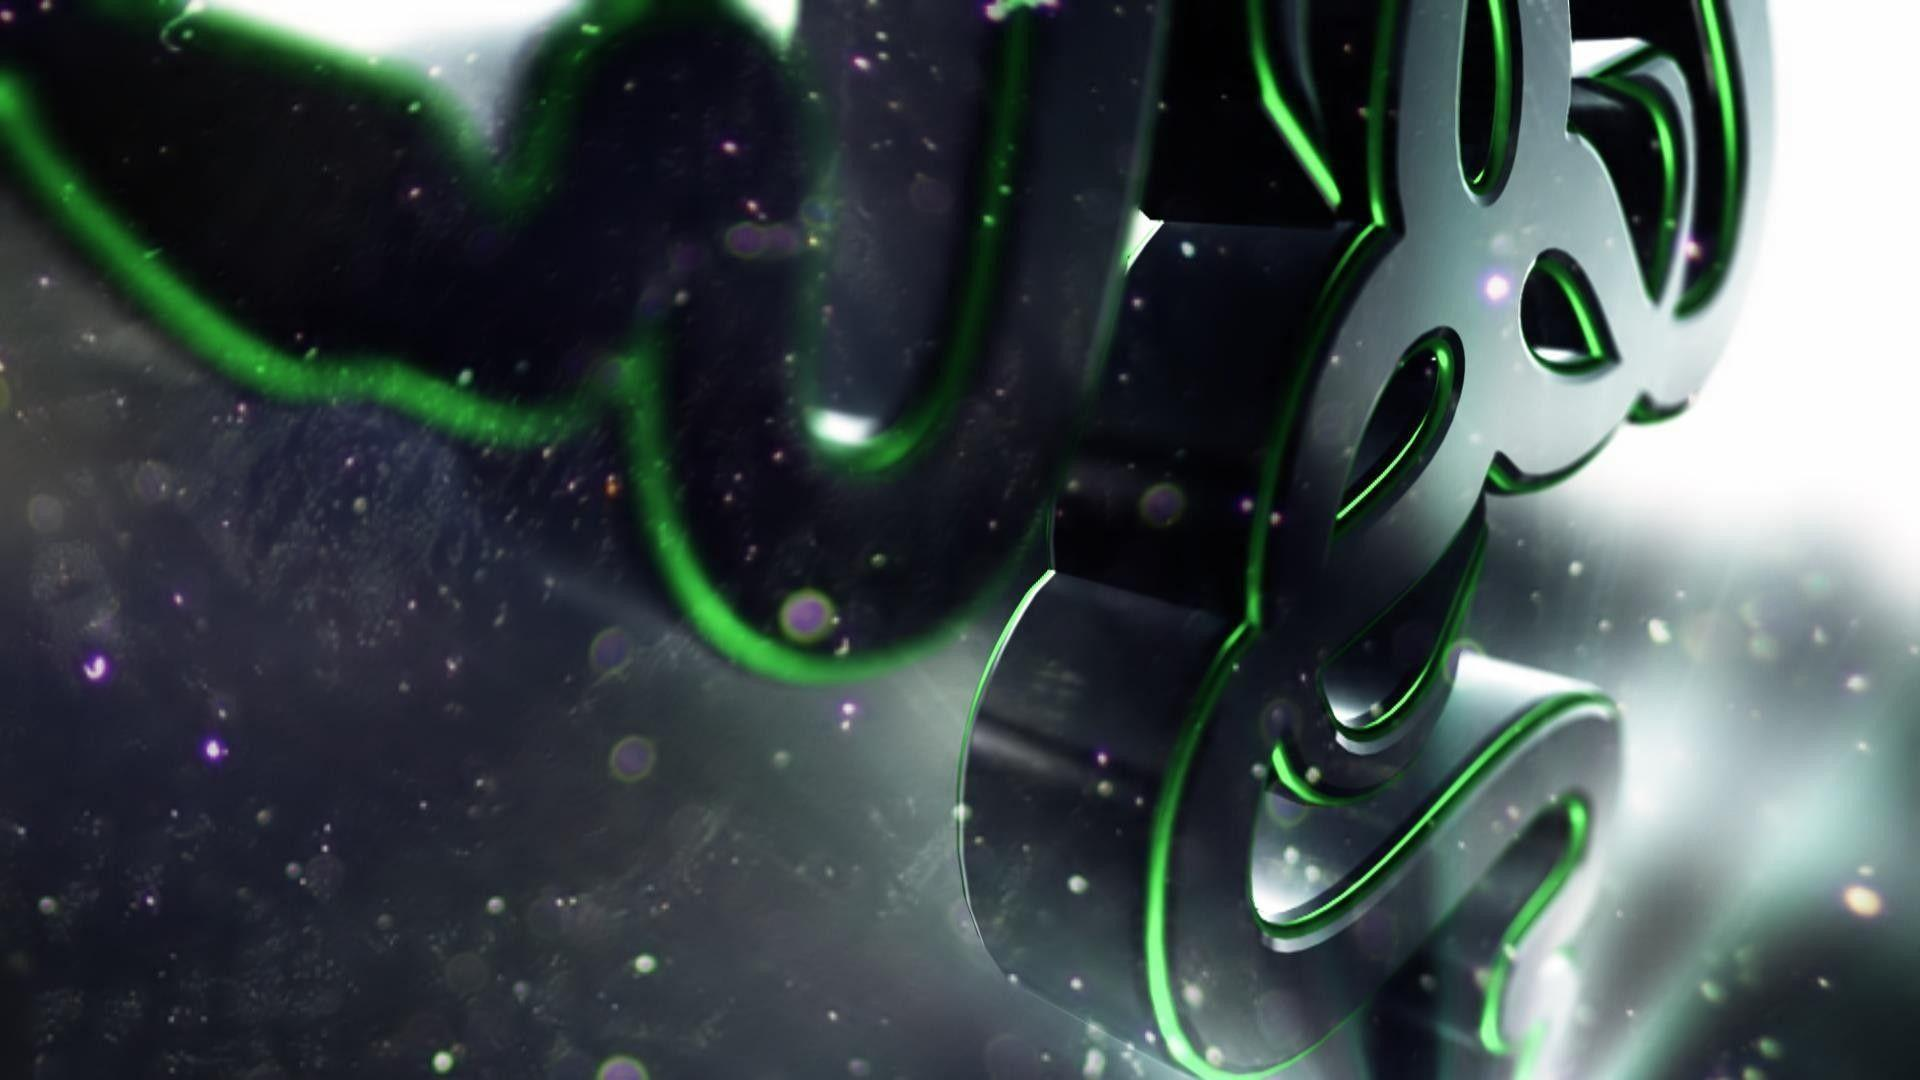 Download Wallpapers 1920x1080 razer, logo, symbol, shape Full HD